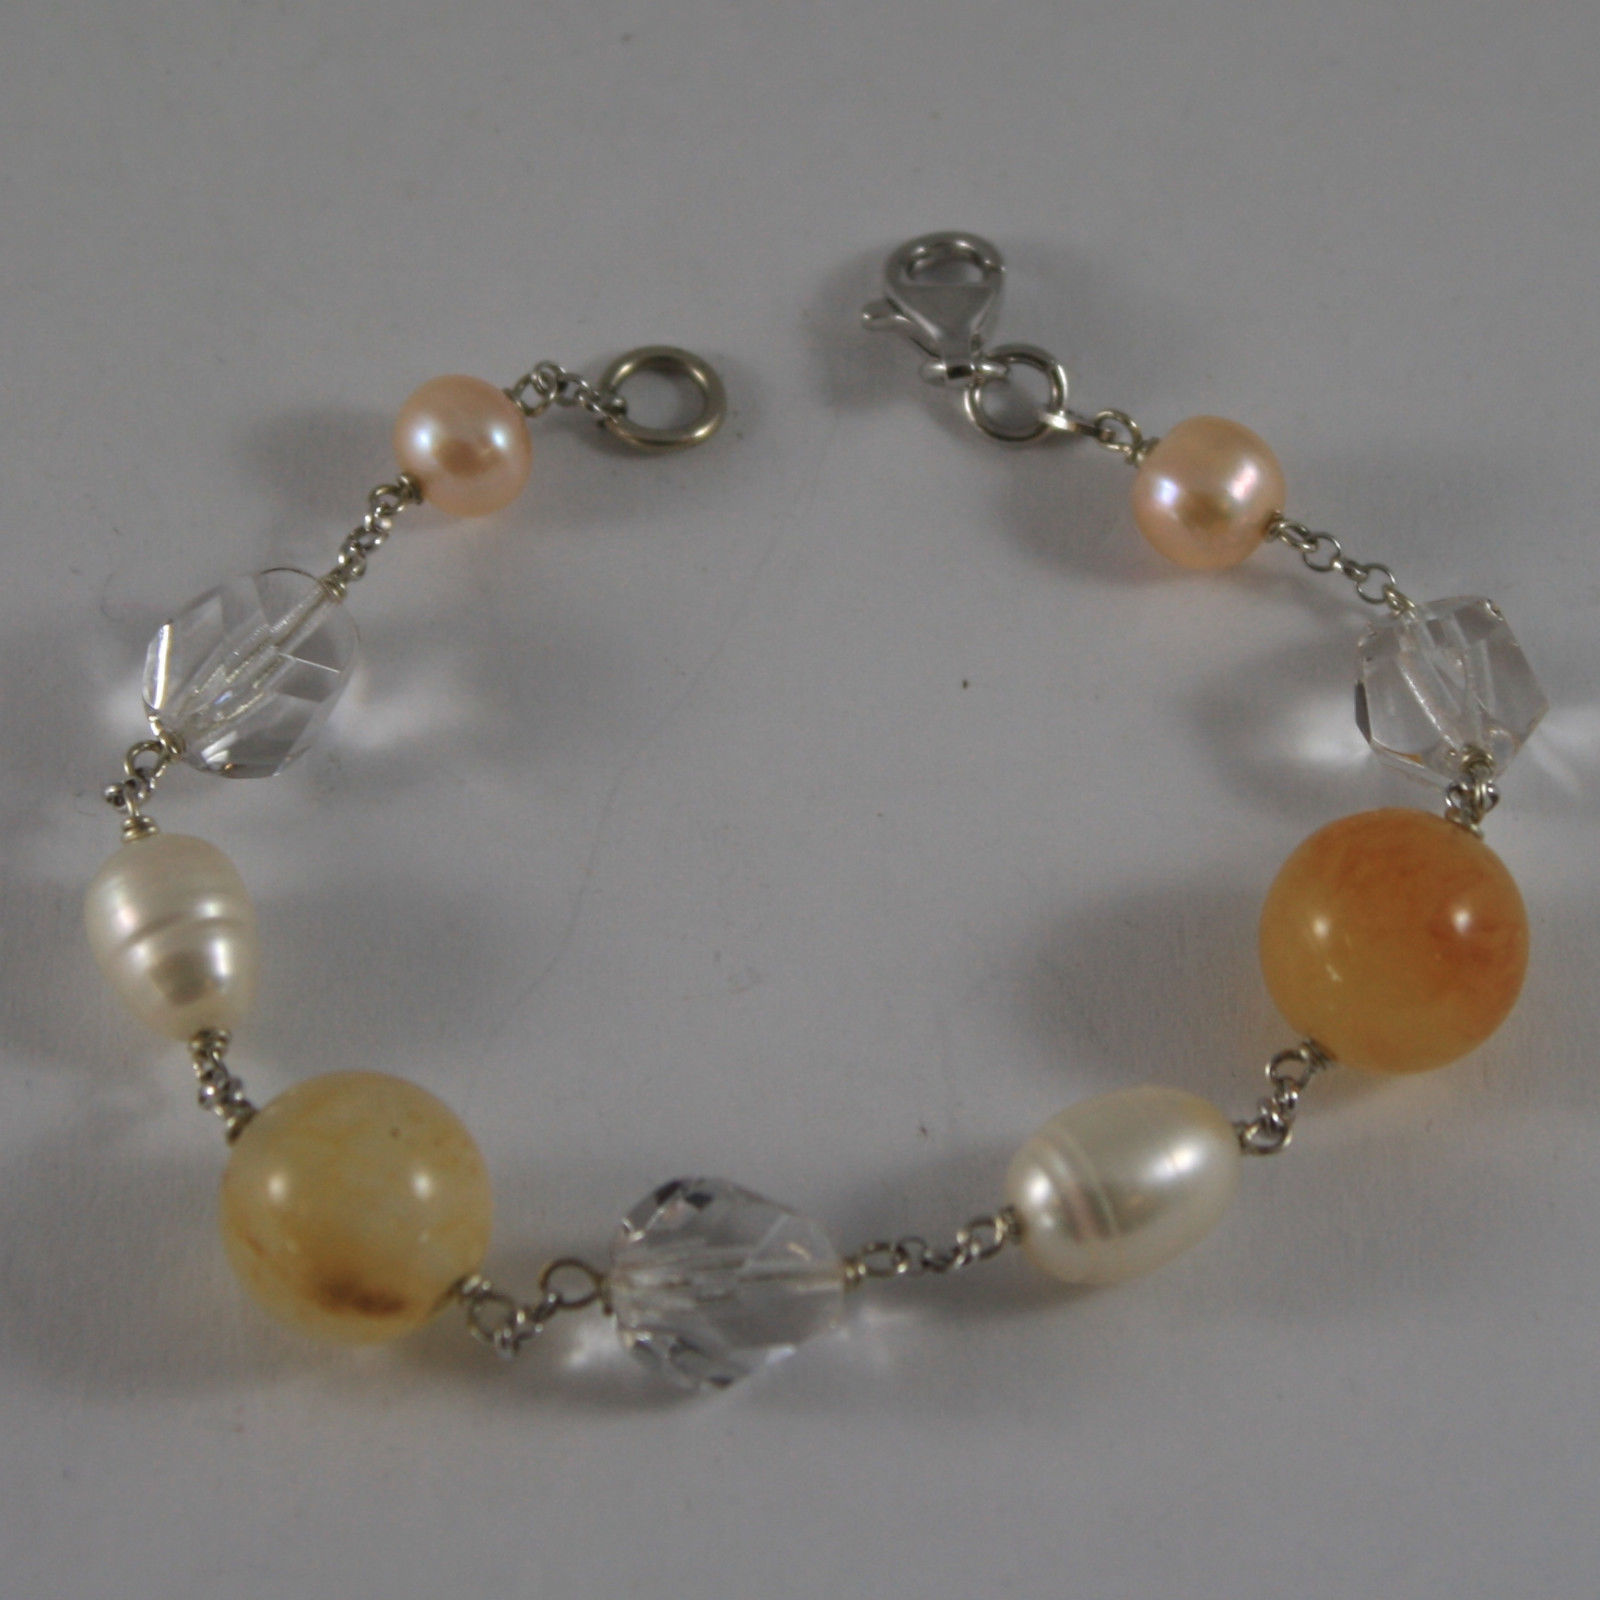 .925 RHODIUM SILVER BRACELET WITH ORANGE AGATE, WHITE&ROSE PEARLS AND CRYSTALS